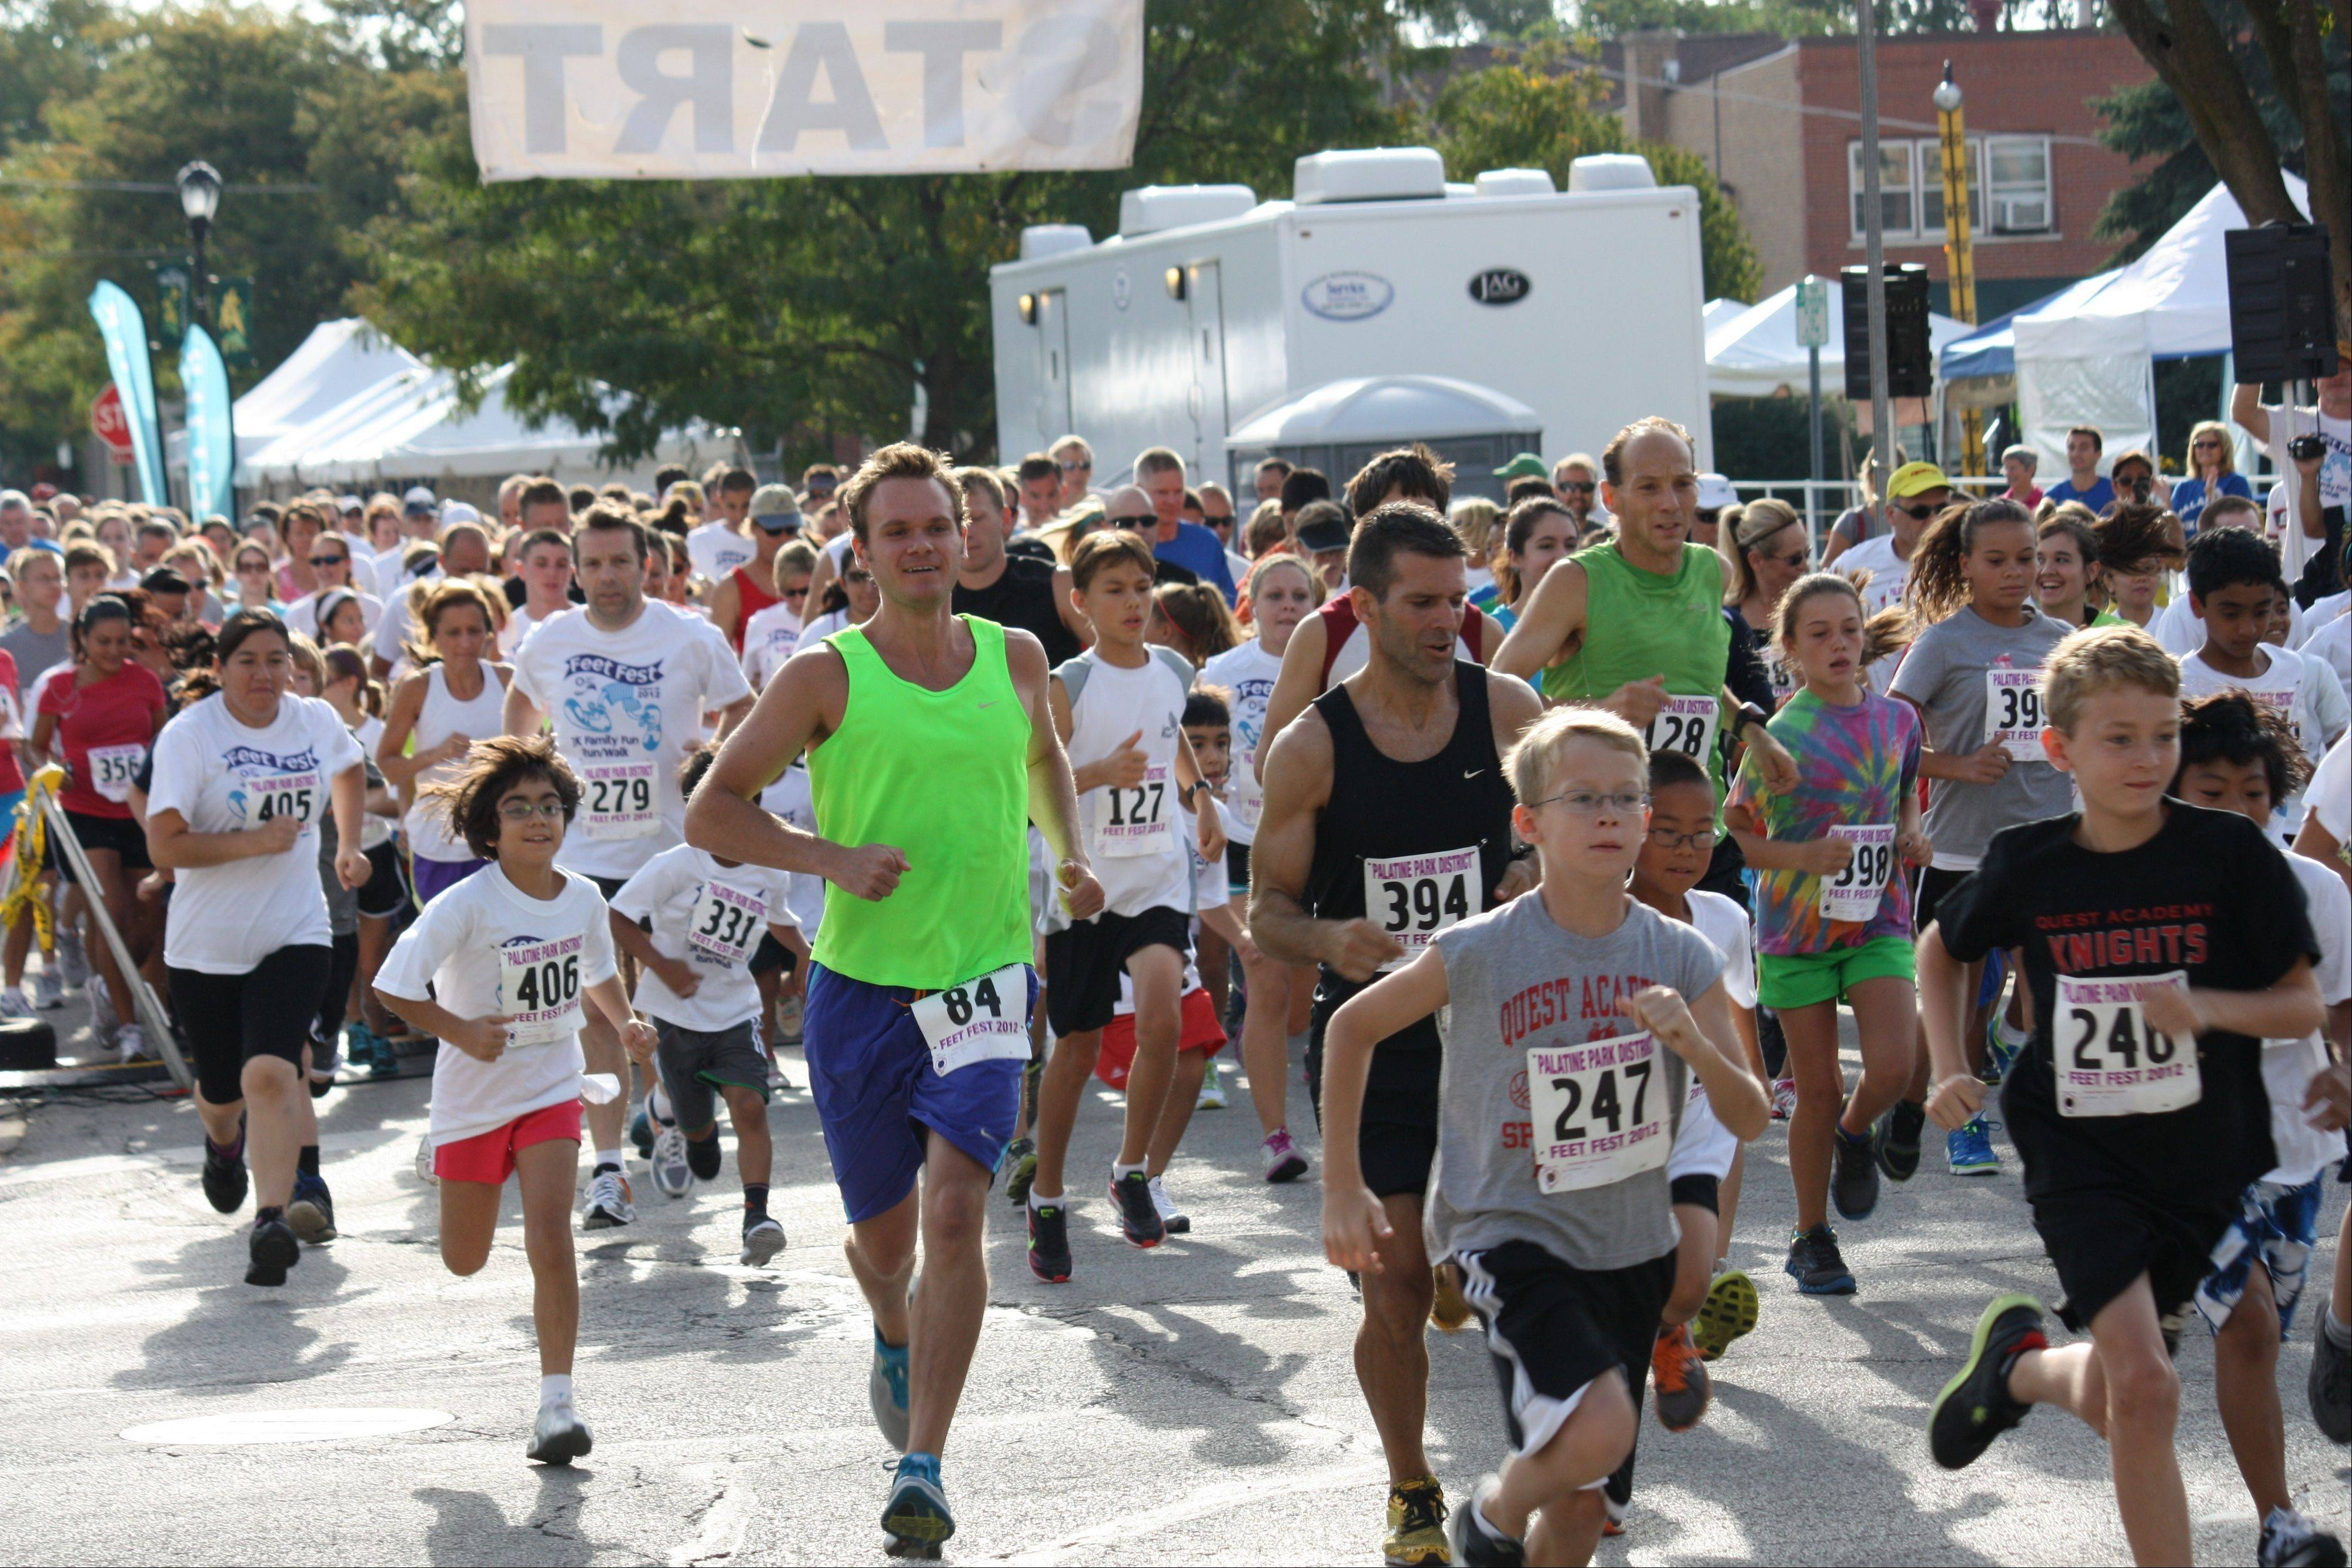 COURTESY OF THE PALATINE PARK DISTRICTRunners take off at the starting point of the 2012 Feet Fest.